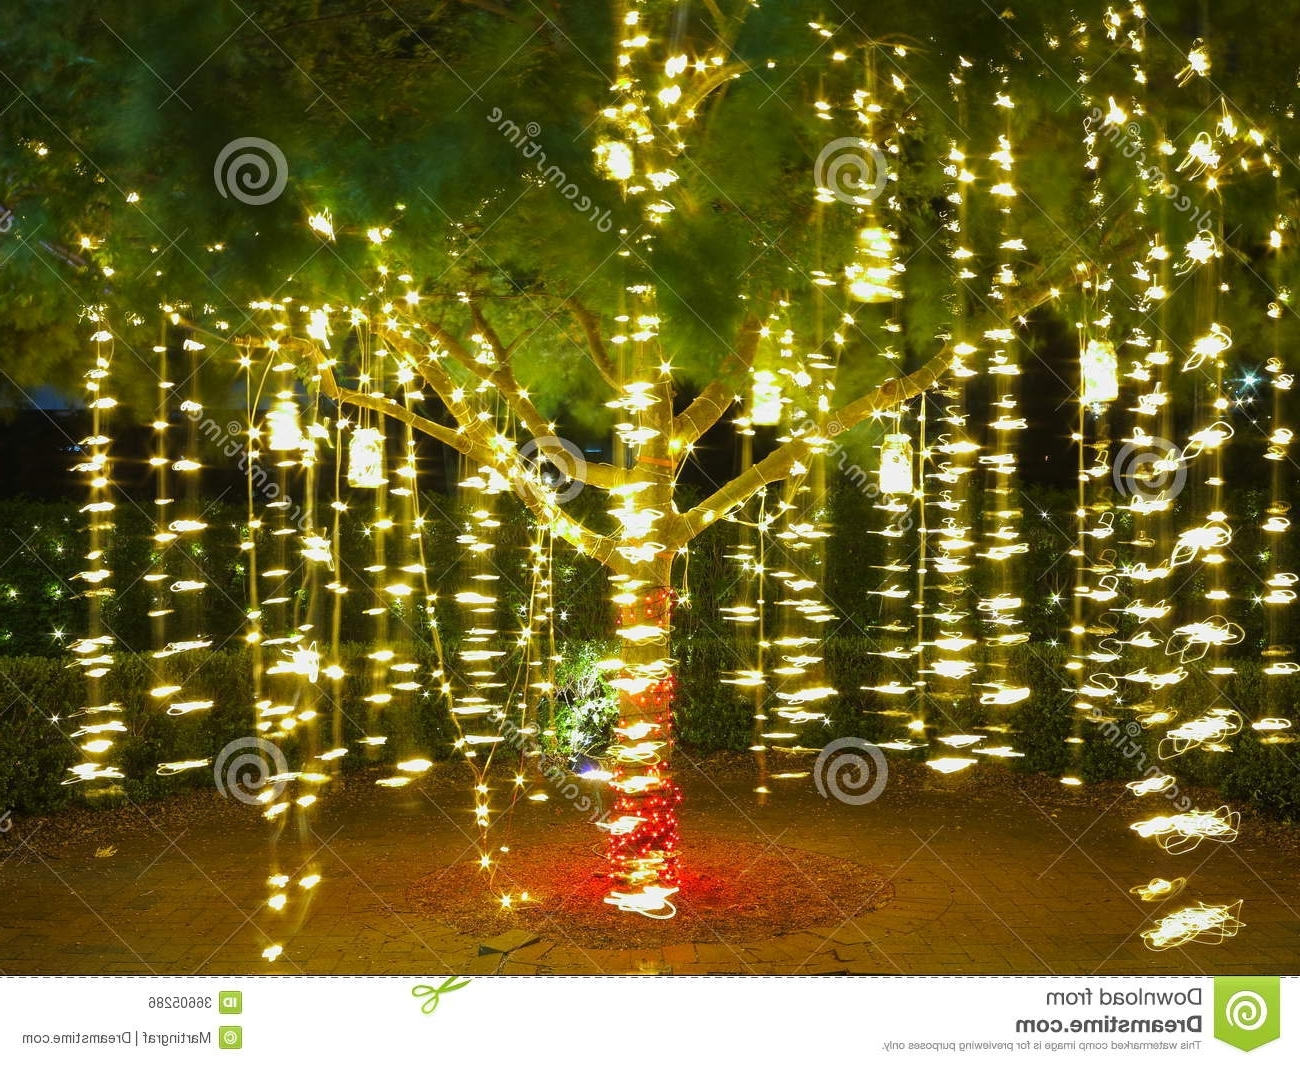 Holiday Lights In Tree / Summer Night Stock Photo – Image Of Festive Regarding Most Recent Hanging Outdoor Christmas Lights In Trees (View 13 of 20)